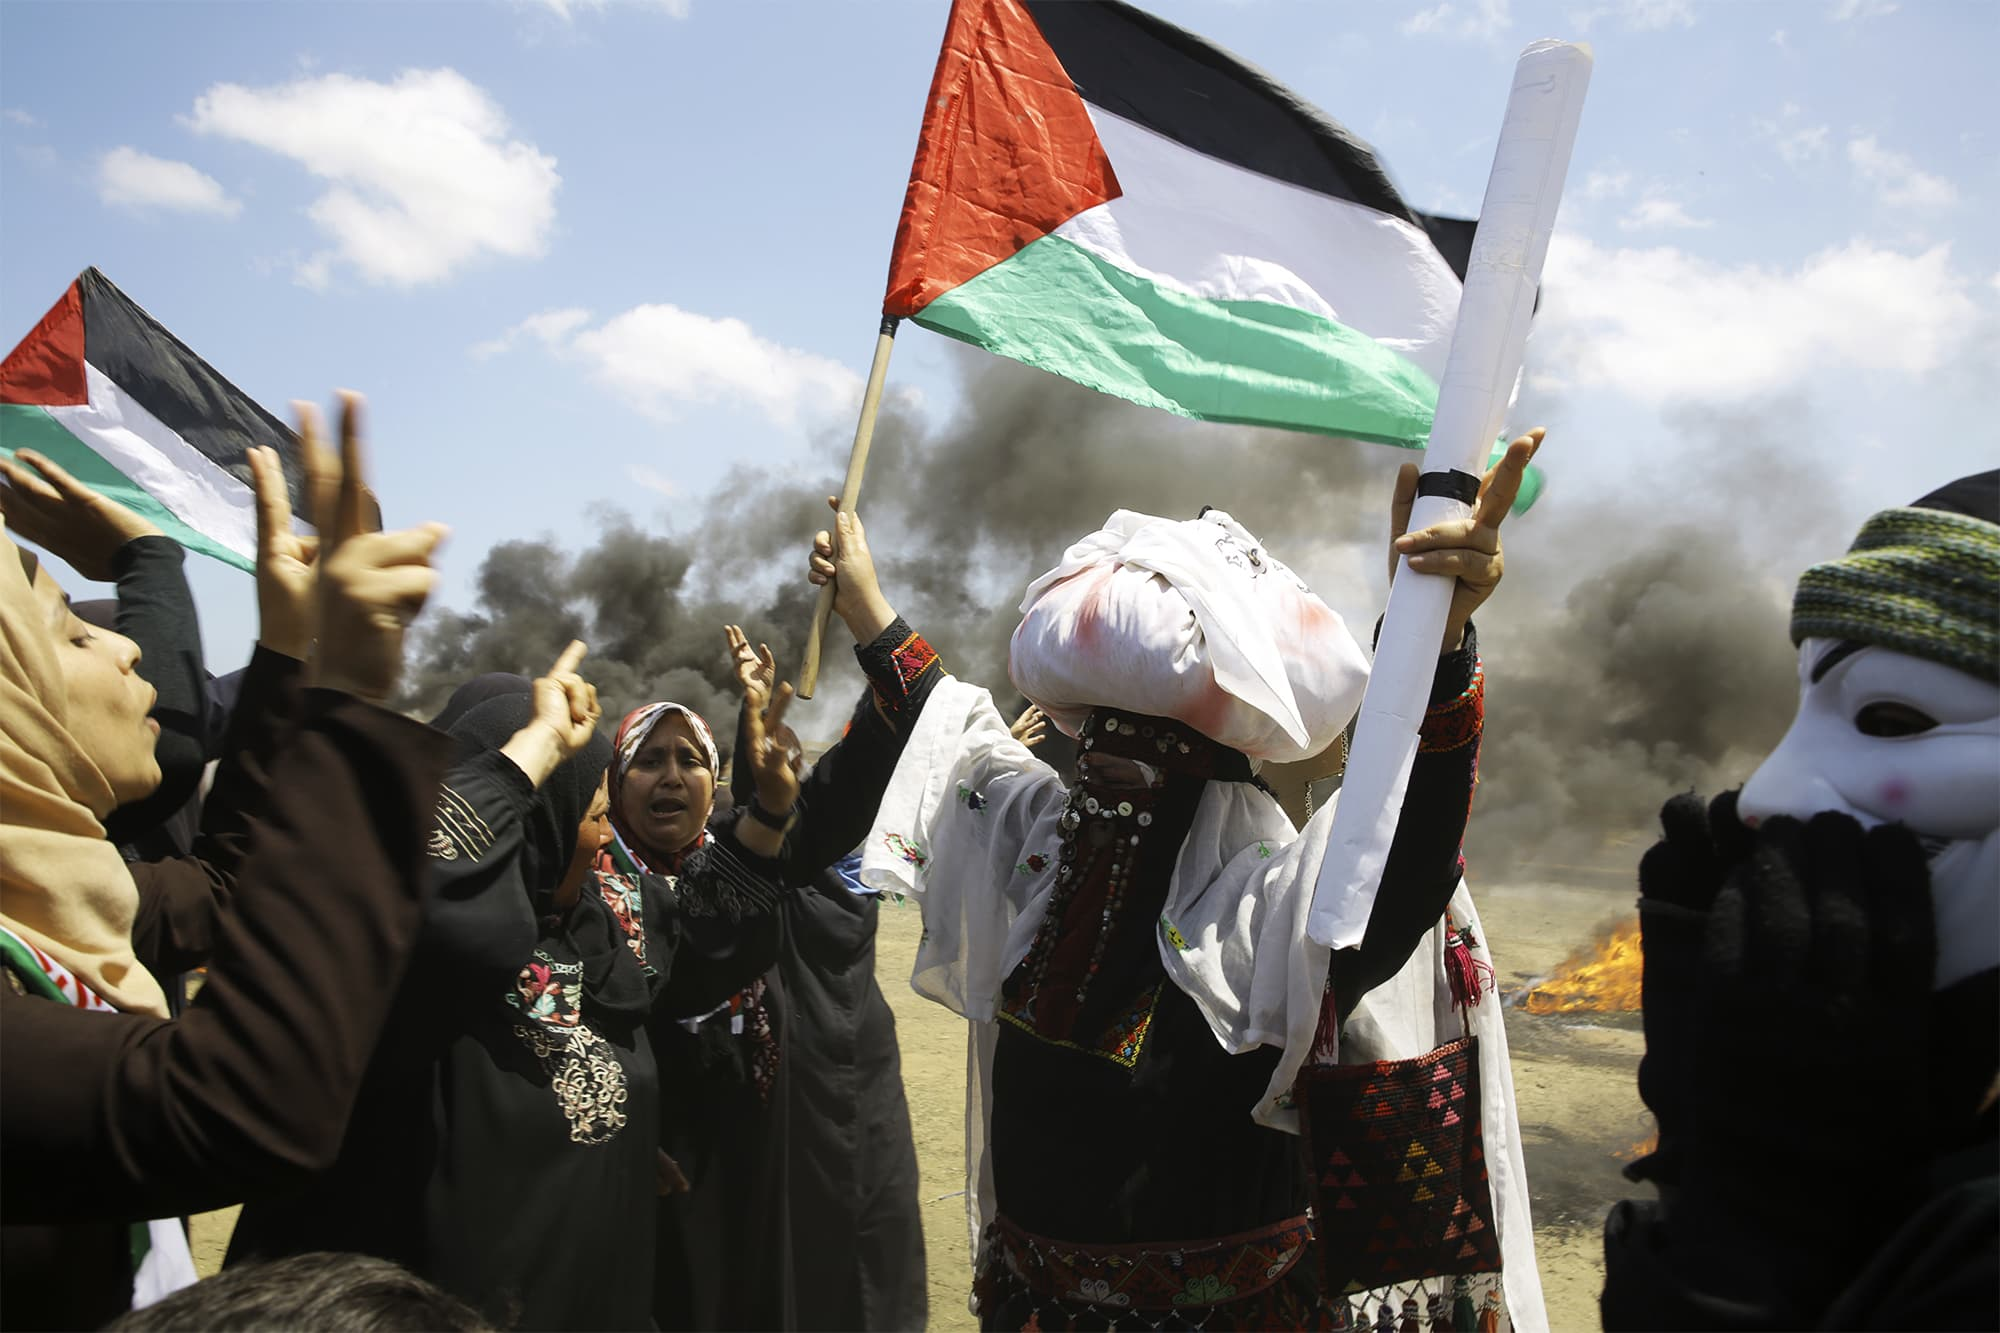 Palestinian women wave national flags and chant slogans near the Israeli border fence, east of Khan Younis, in the Gaza Strip, Monday, May 14, 2018. ─ AP